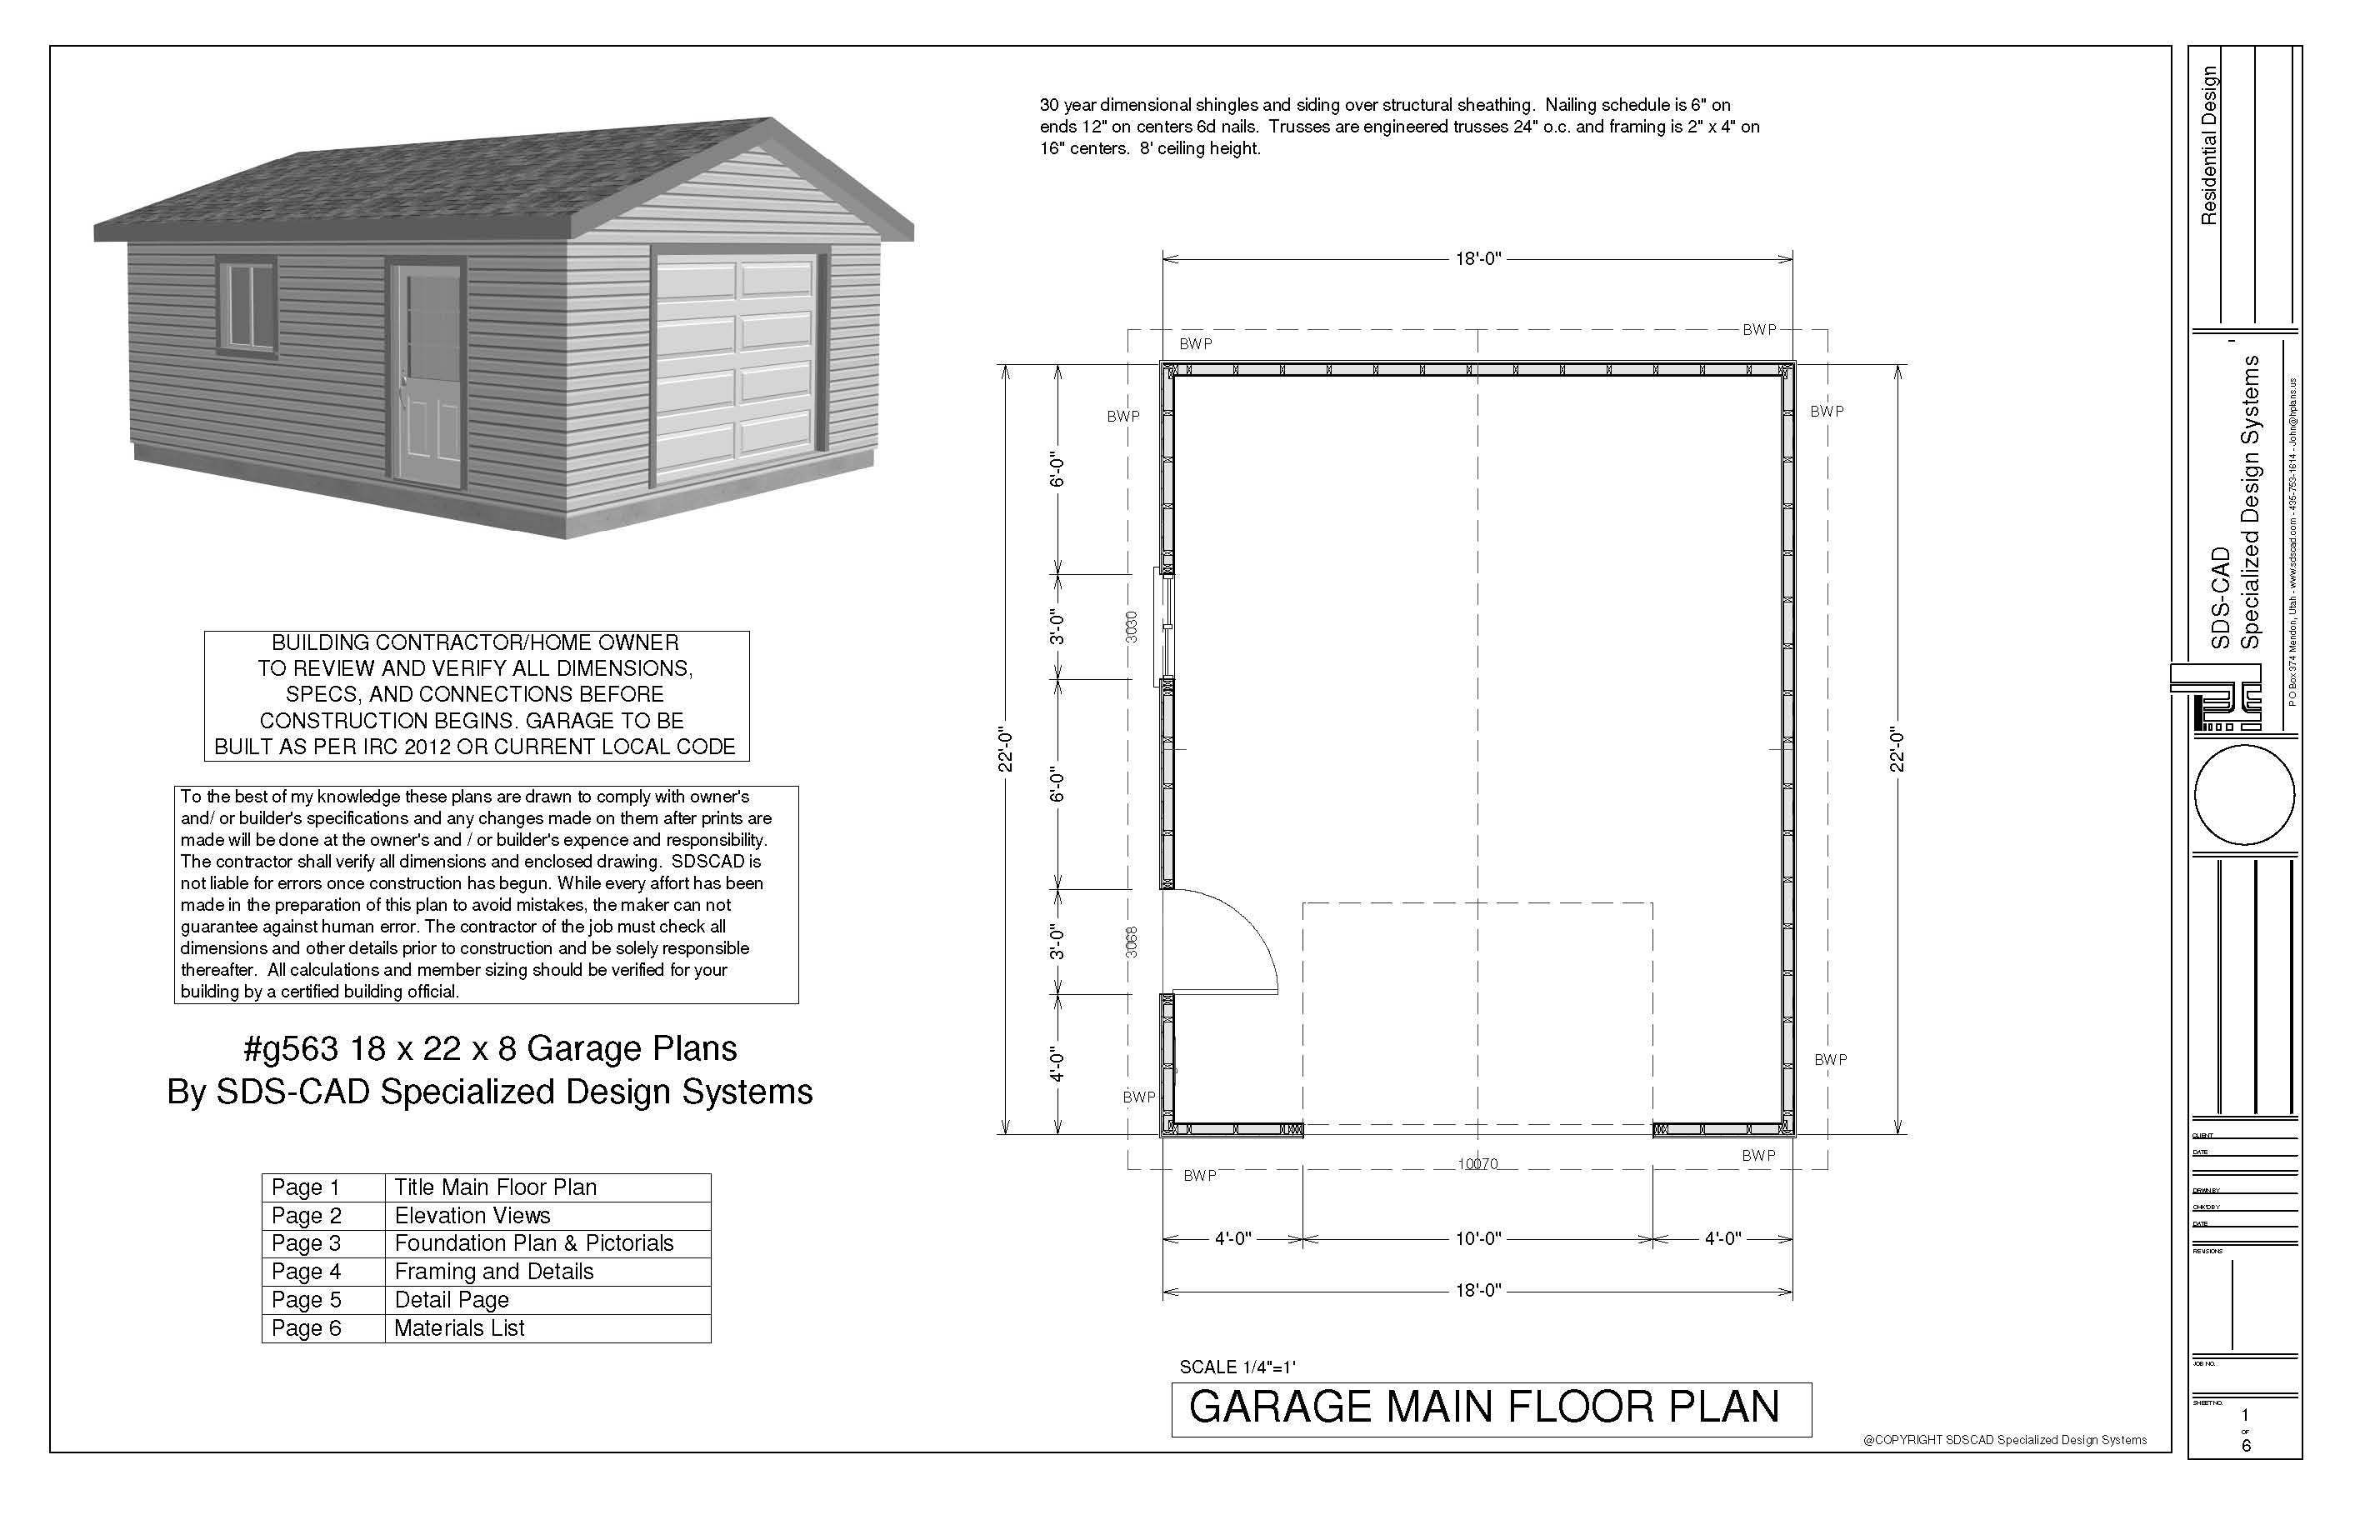 G563 18 x 22 x 8 garage plans in pdf and dwg garage for Pole barn plans pdf